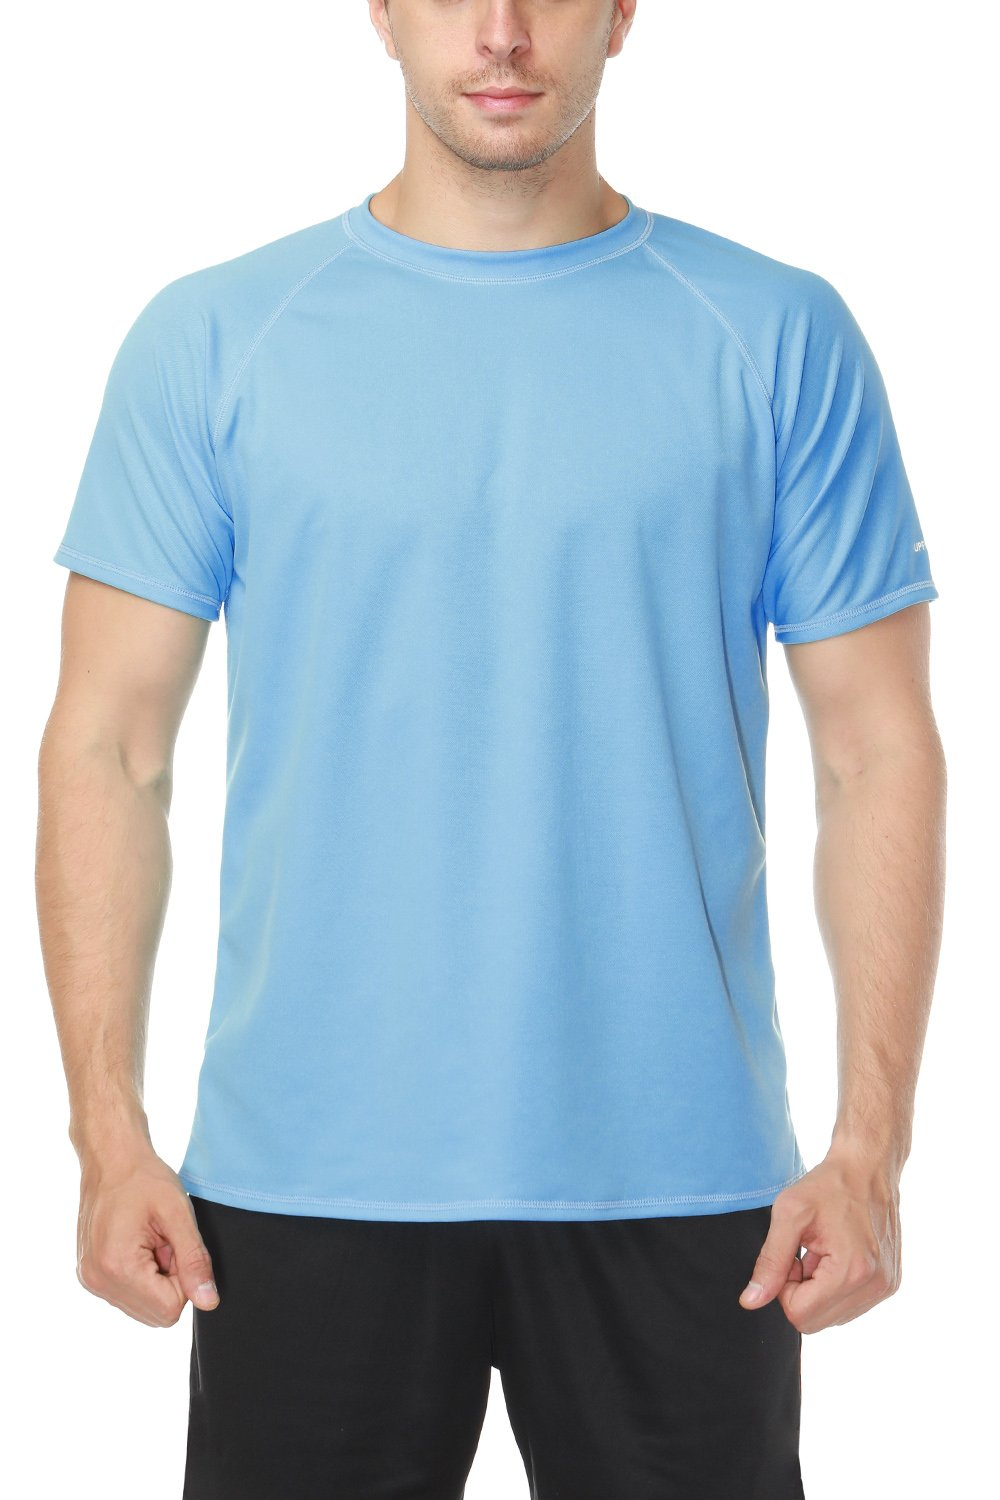 V FOR CITY Water Shirts for Men Short Sleeve Swim Shirt Rash Guard Swimsuit Top Blue L by V FOR CITY